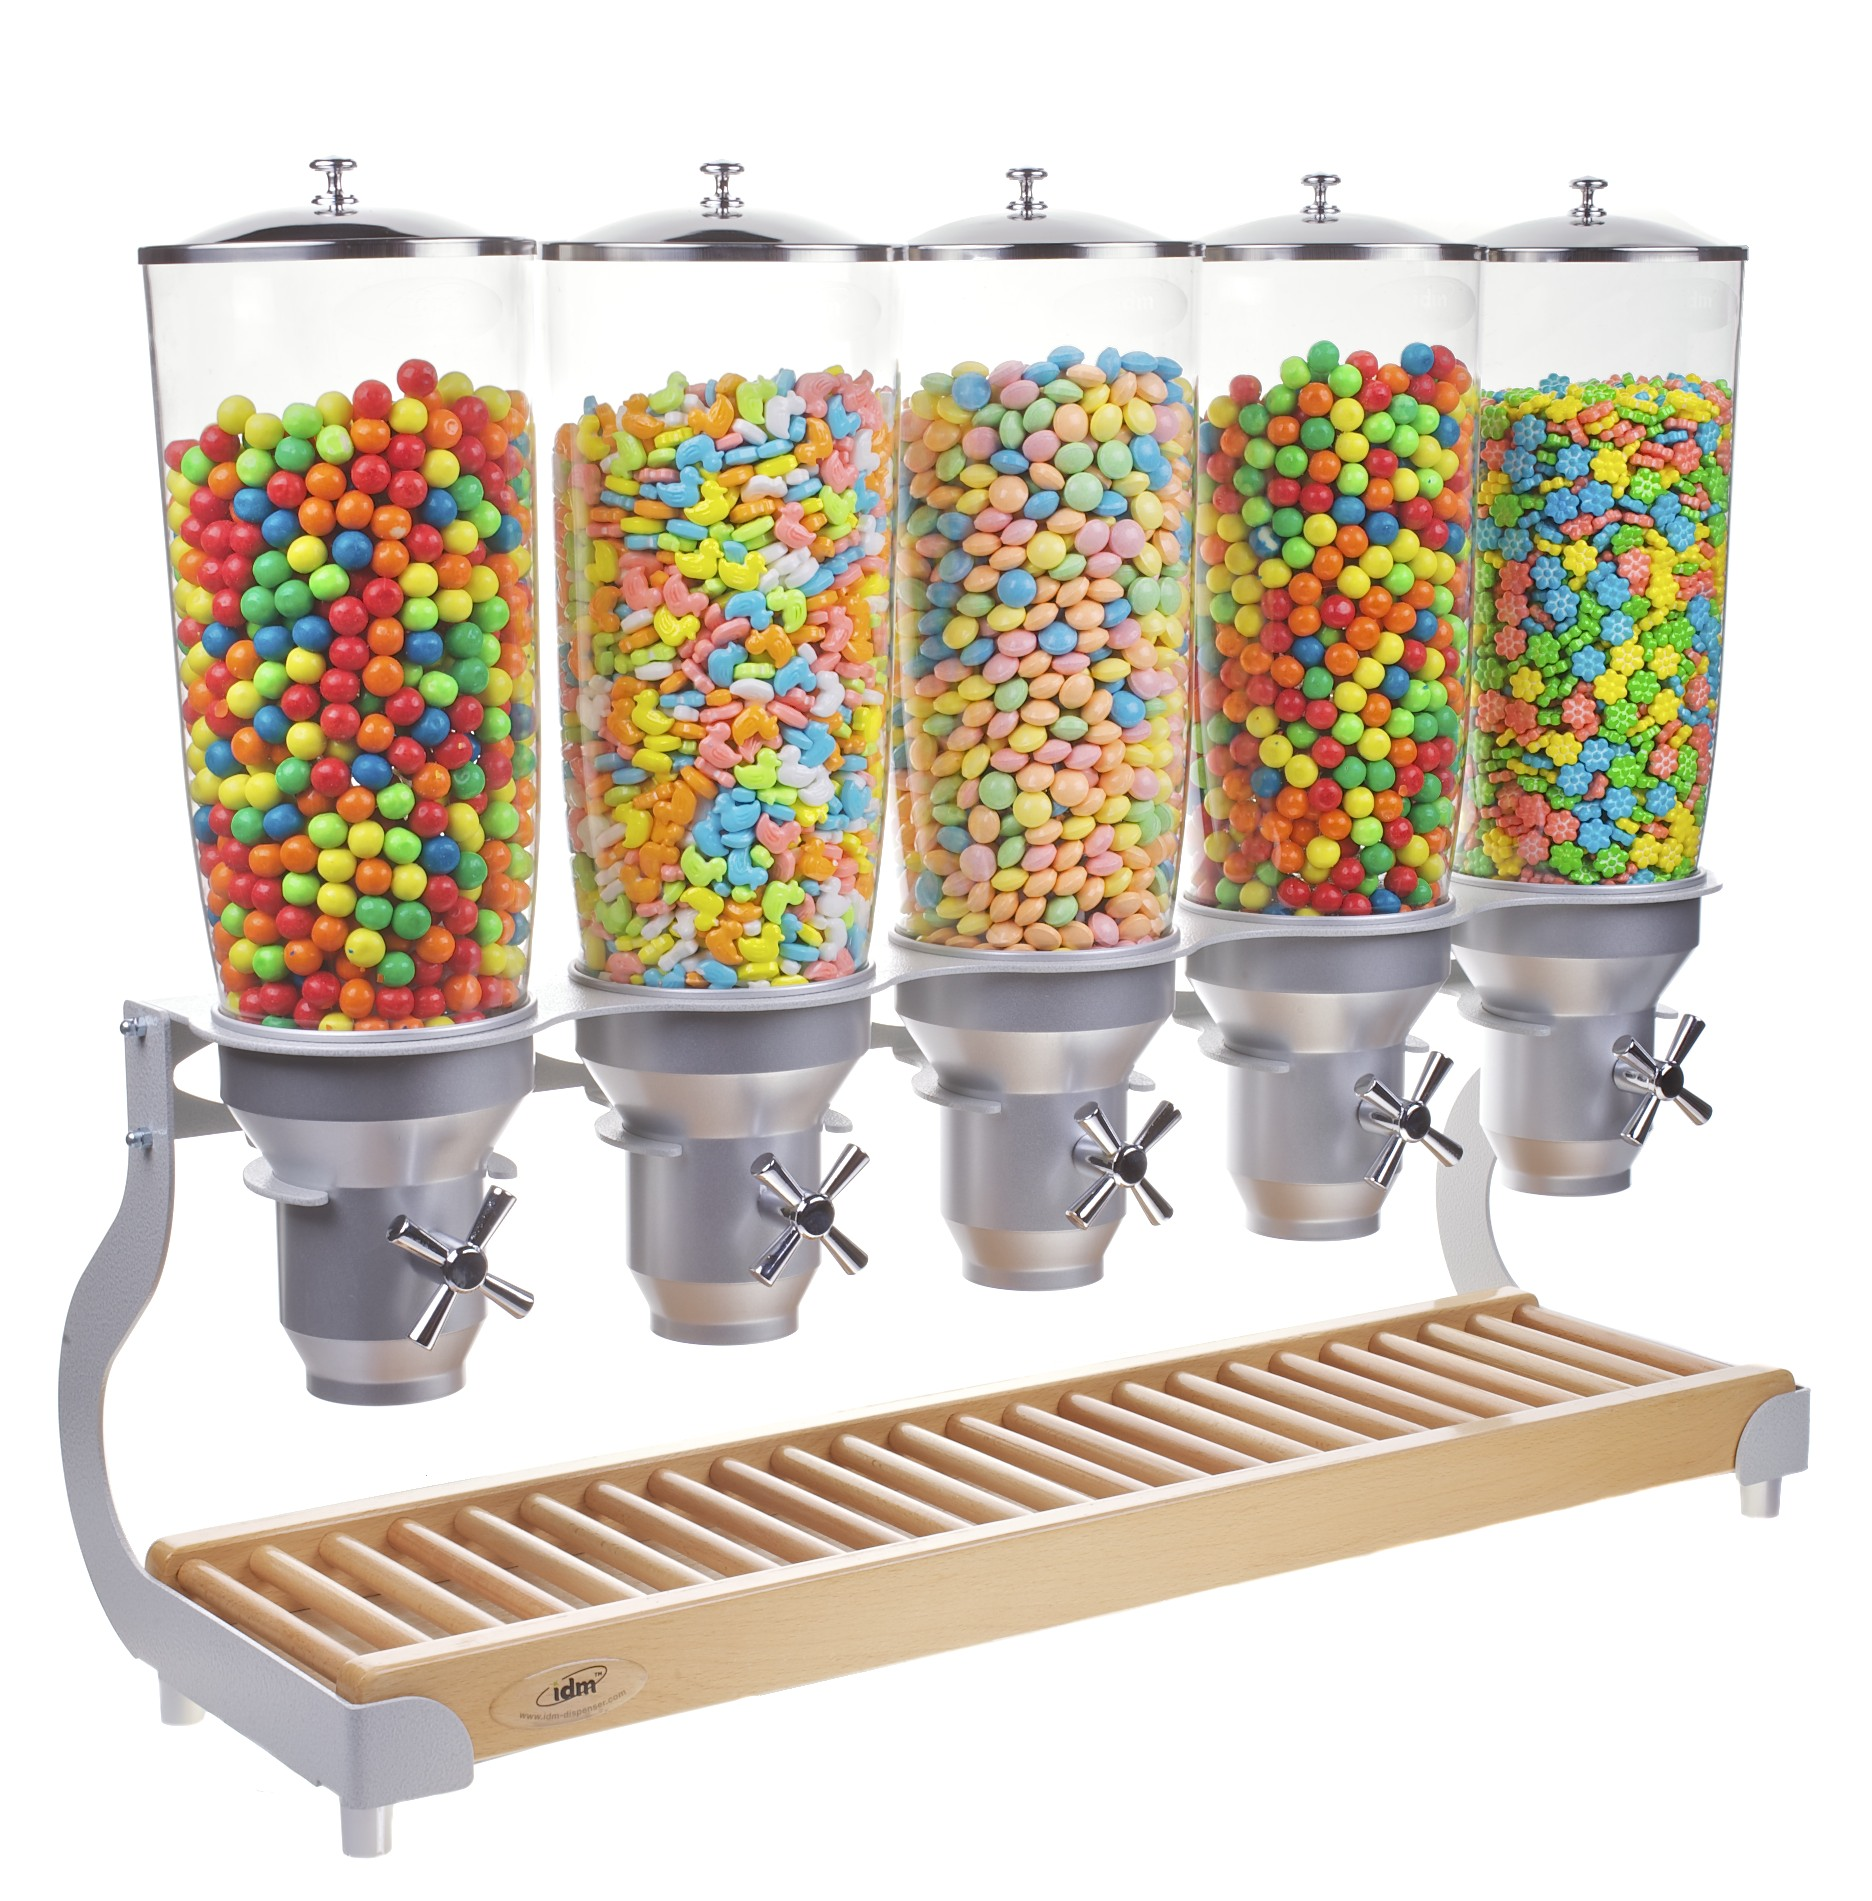 QEC offers a unique range of dry food dispensers for commercial, retail and private use.Utilizing high quality materials and exceptional designs - D50. Australian Distributor.